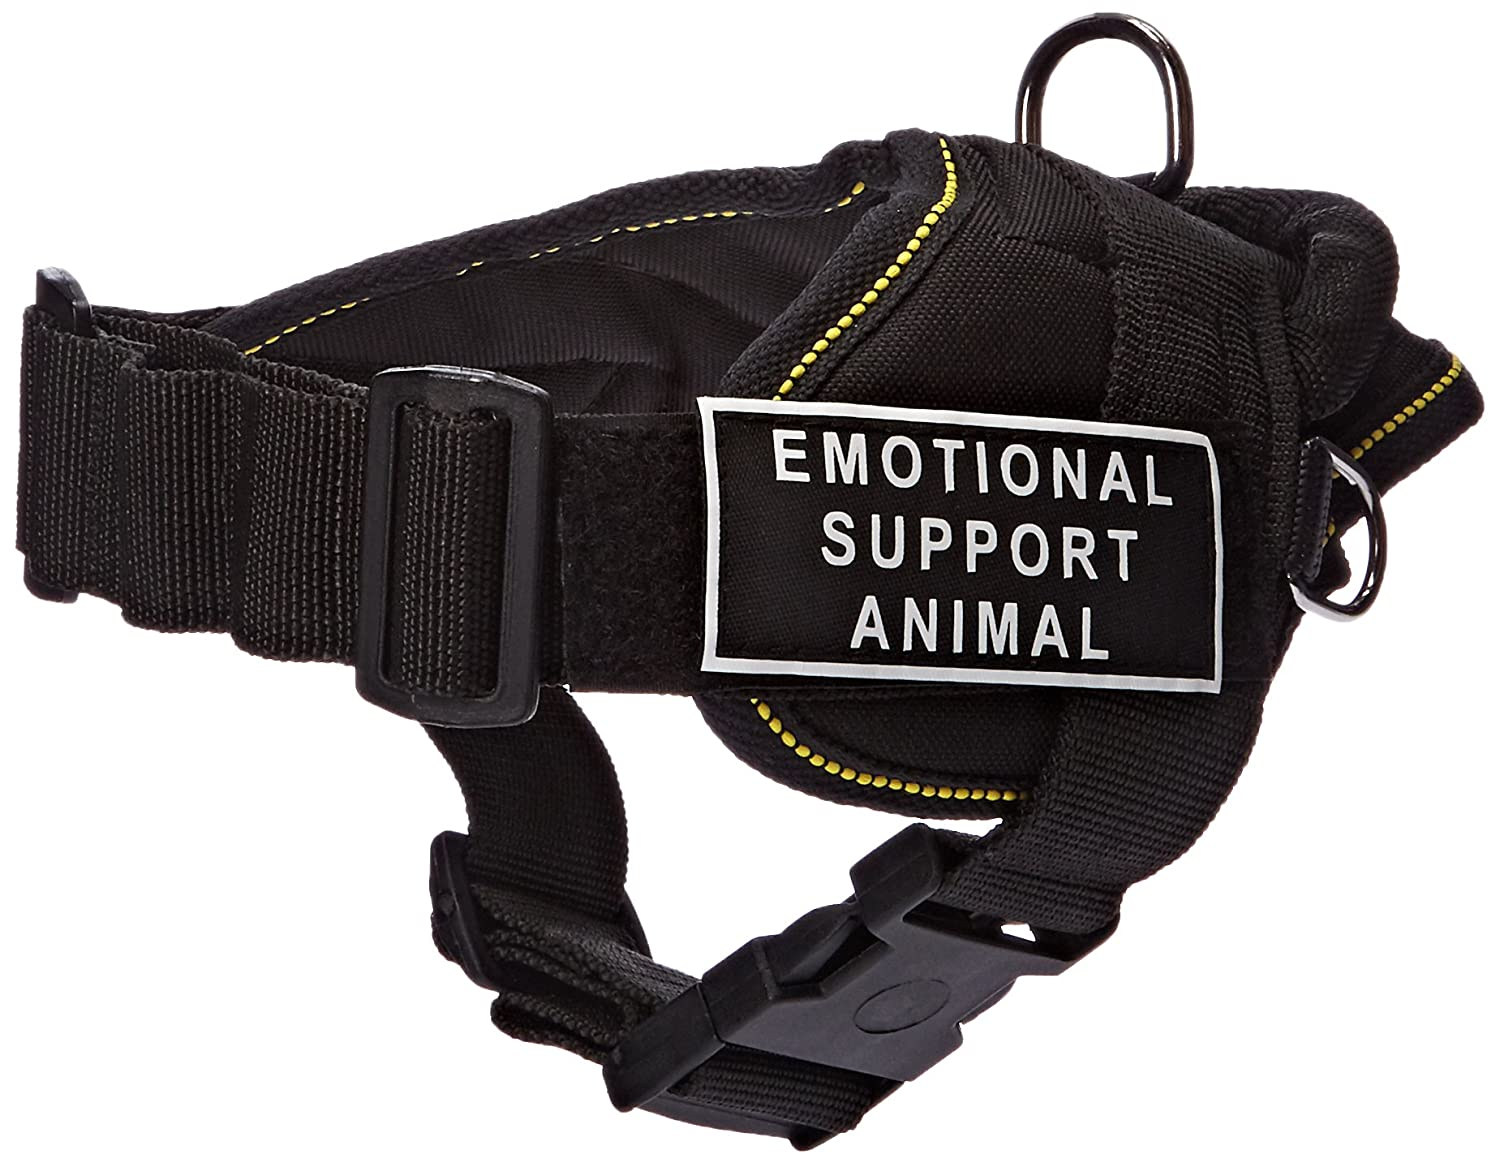 Dean & Tyler Fun Works Harness, Emotional Support Animal, Black with Yellow Trim, X-Small, Fits Girth Size  20-Inch to 23-Inch